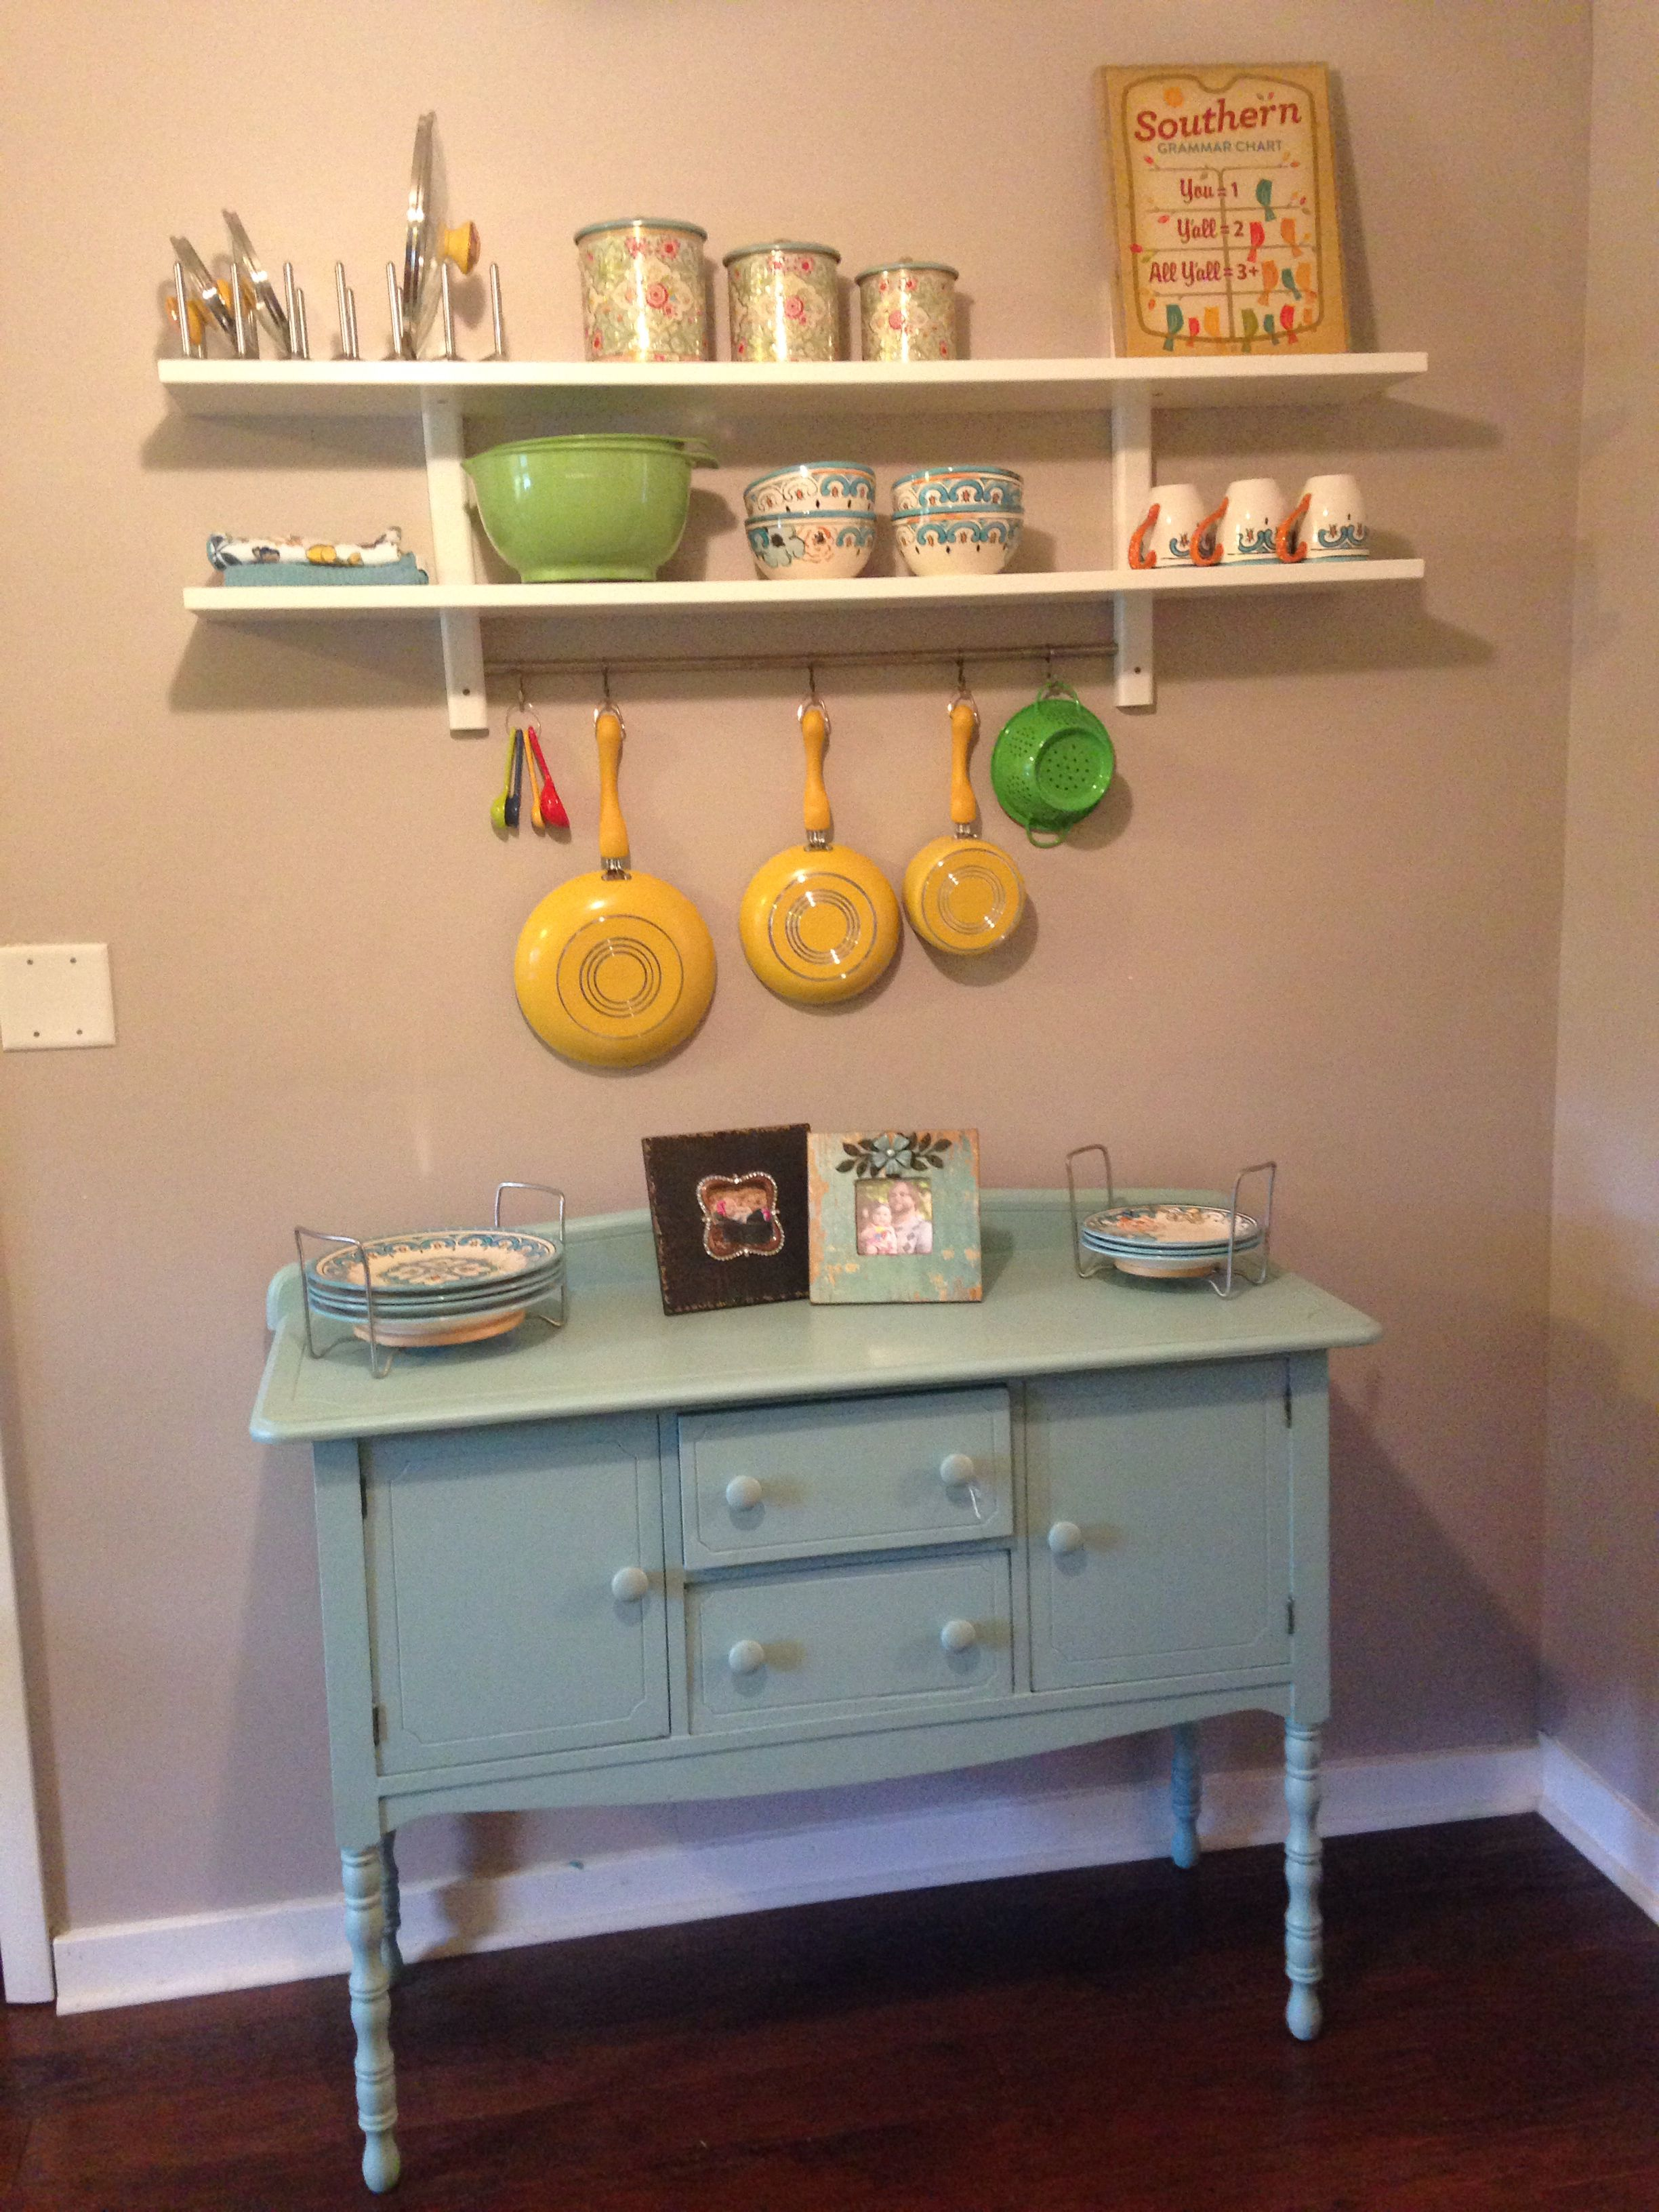 Ikea Varde Wall Shelf With 5 Hooks Over Blue Refinished Buffet Southern Chic Vintage Kitchen Ideas Www Mimikayphotography Com